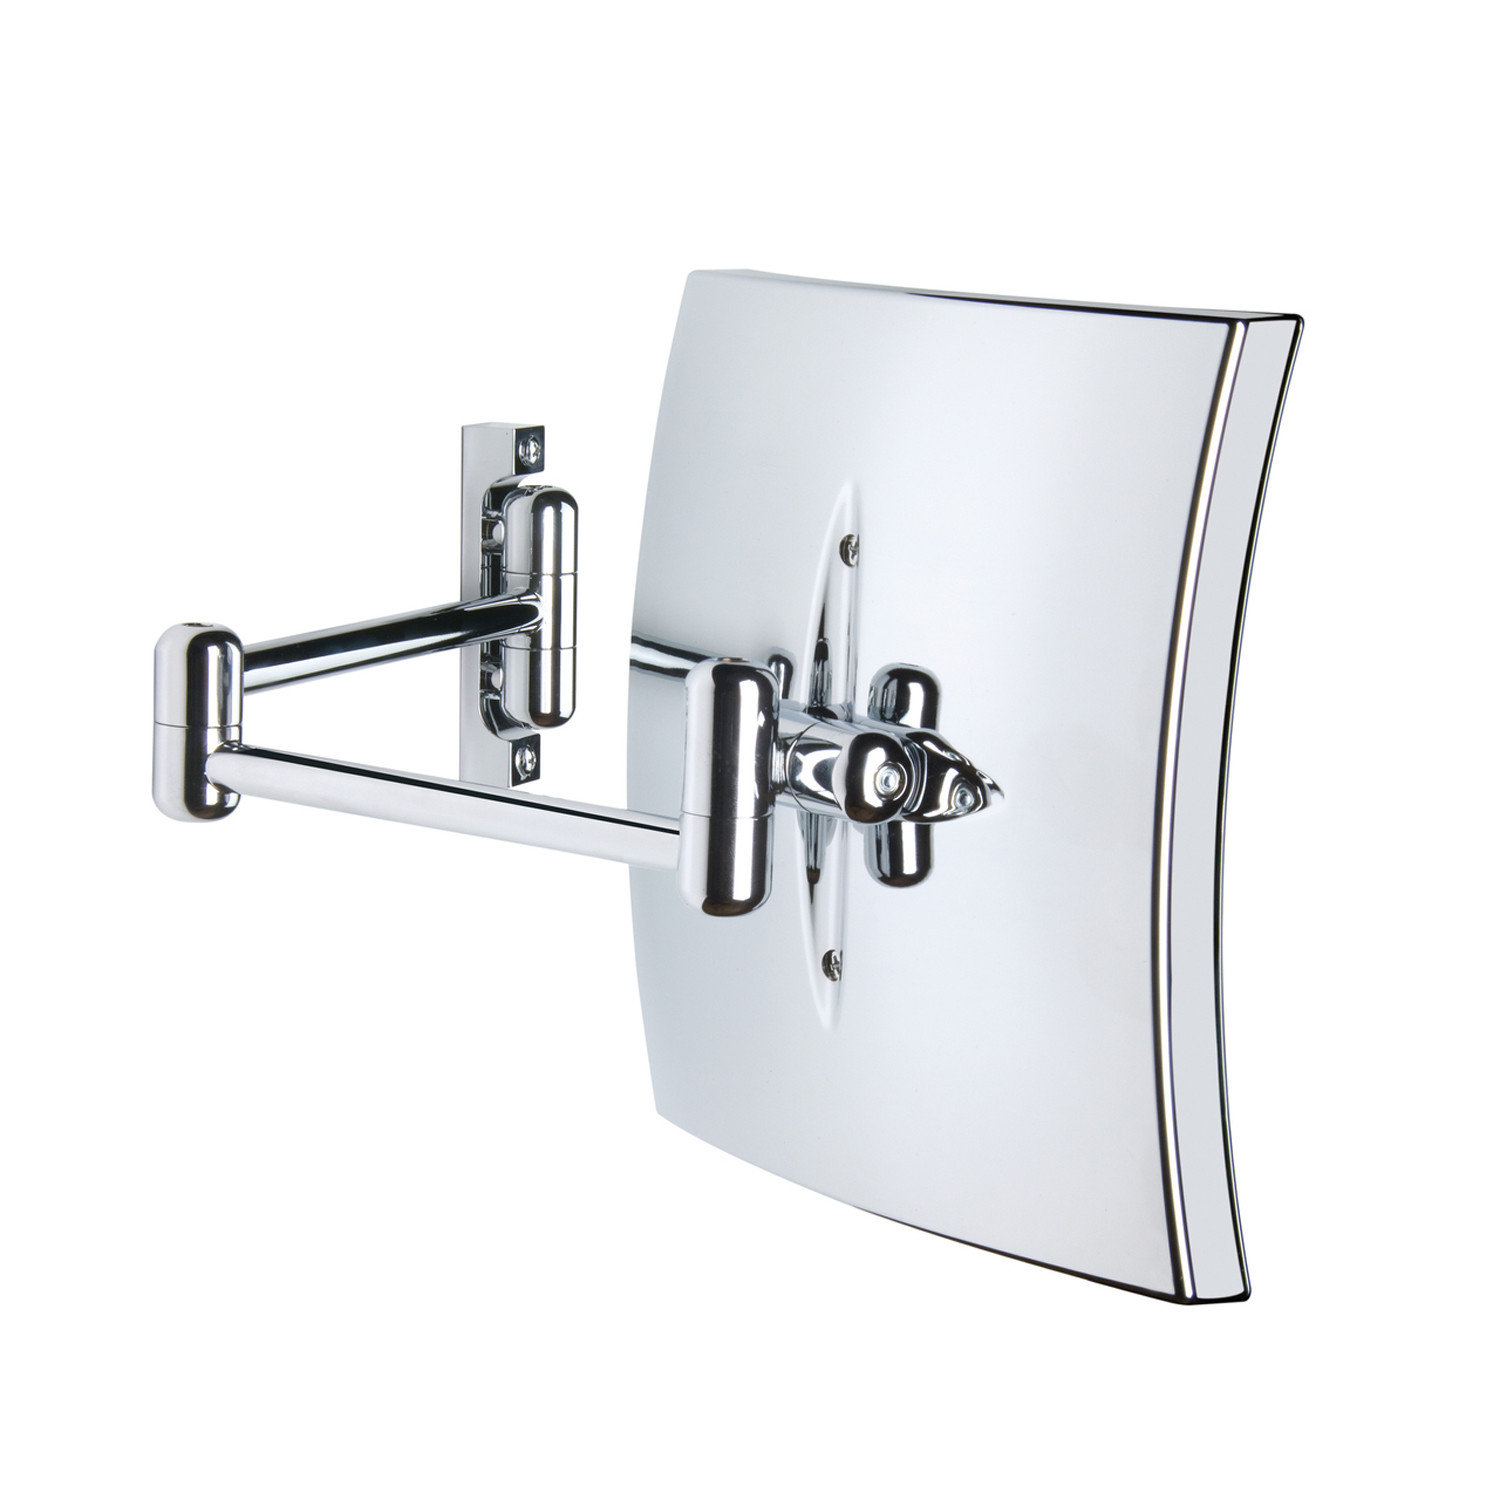 Led lighted wall mounted magnifying mirror ws bath for Wall mounted extendable mirror bathroom